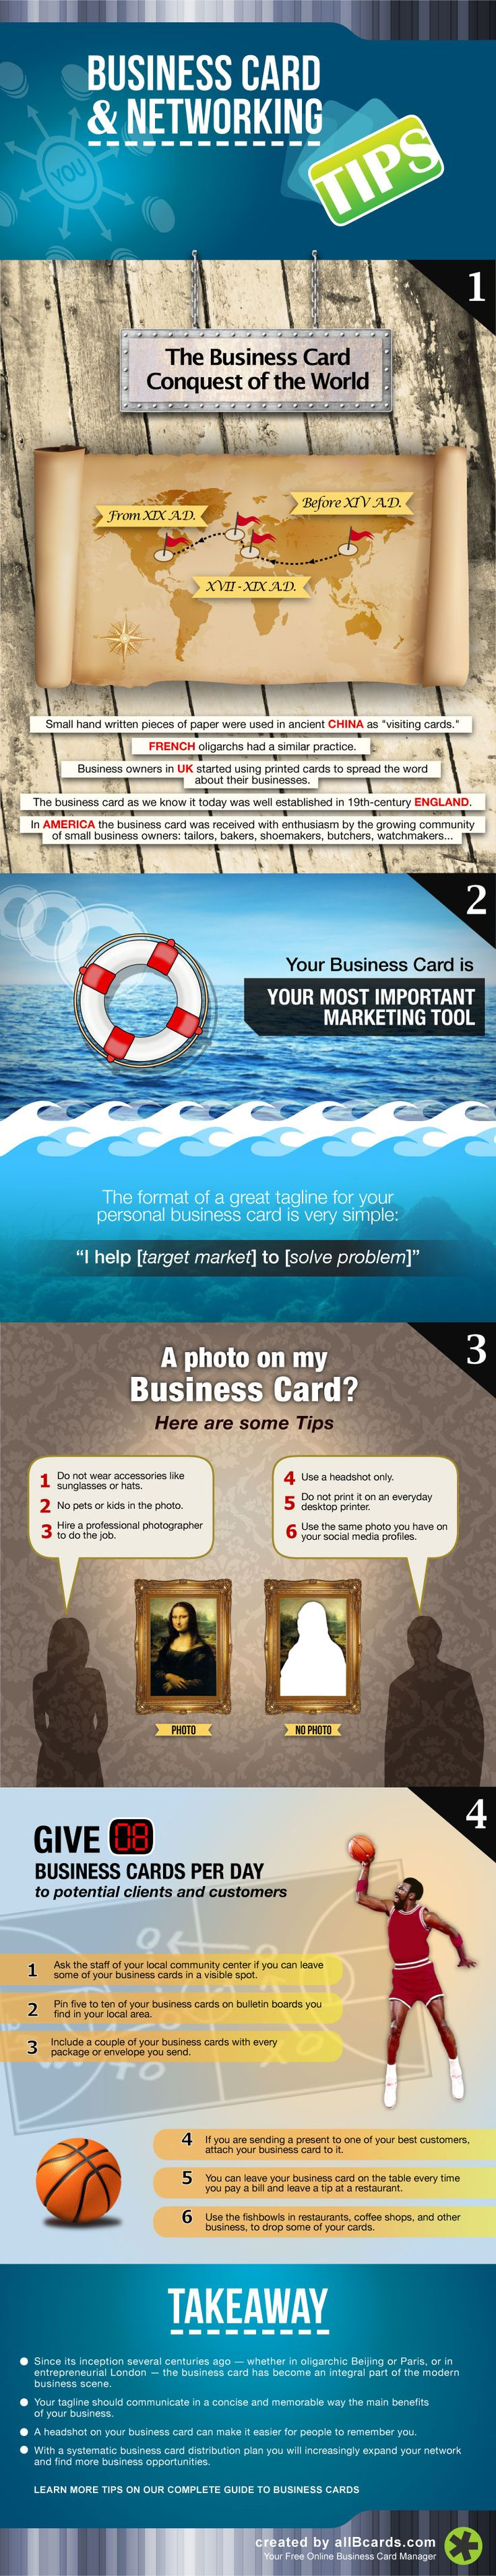 50 best Smart TIPS on Business Cards and Networking. images on ...